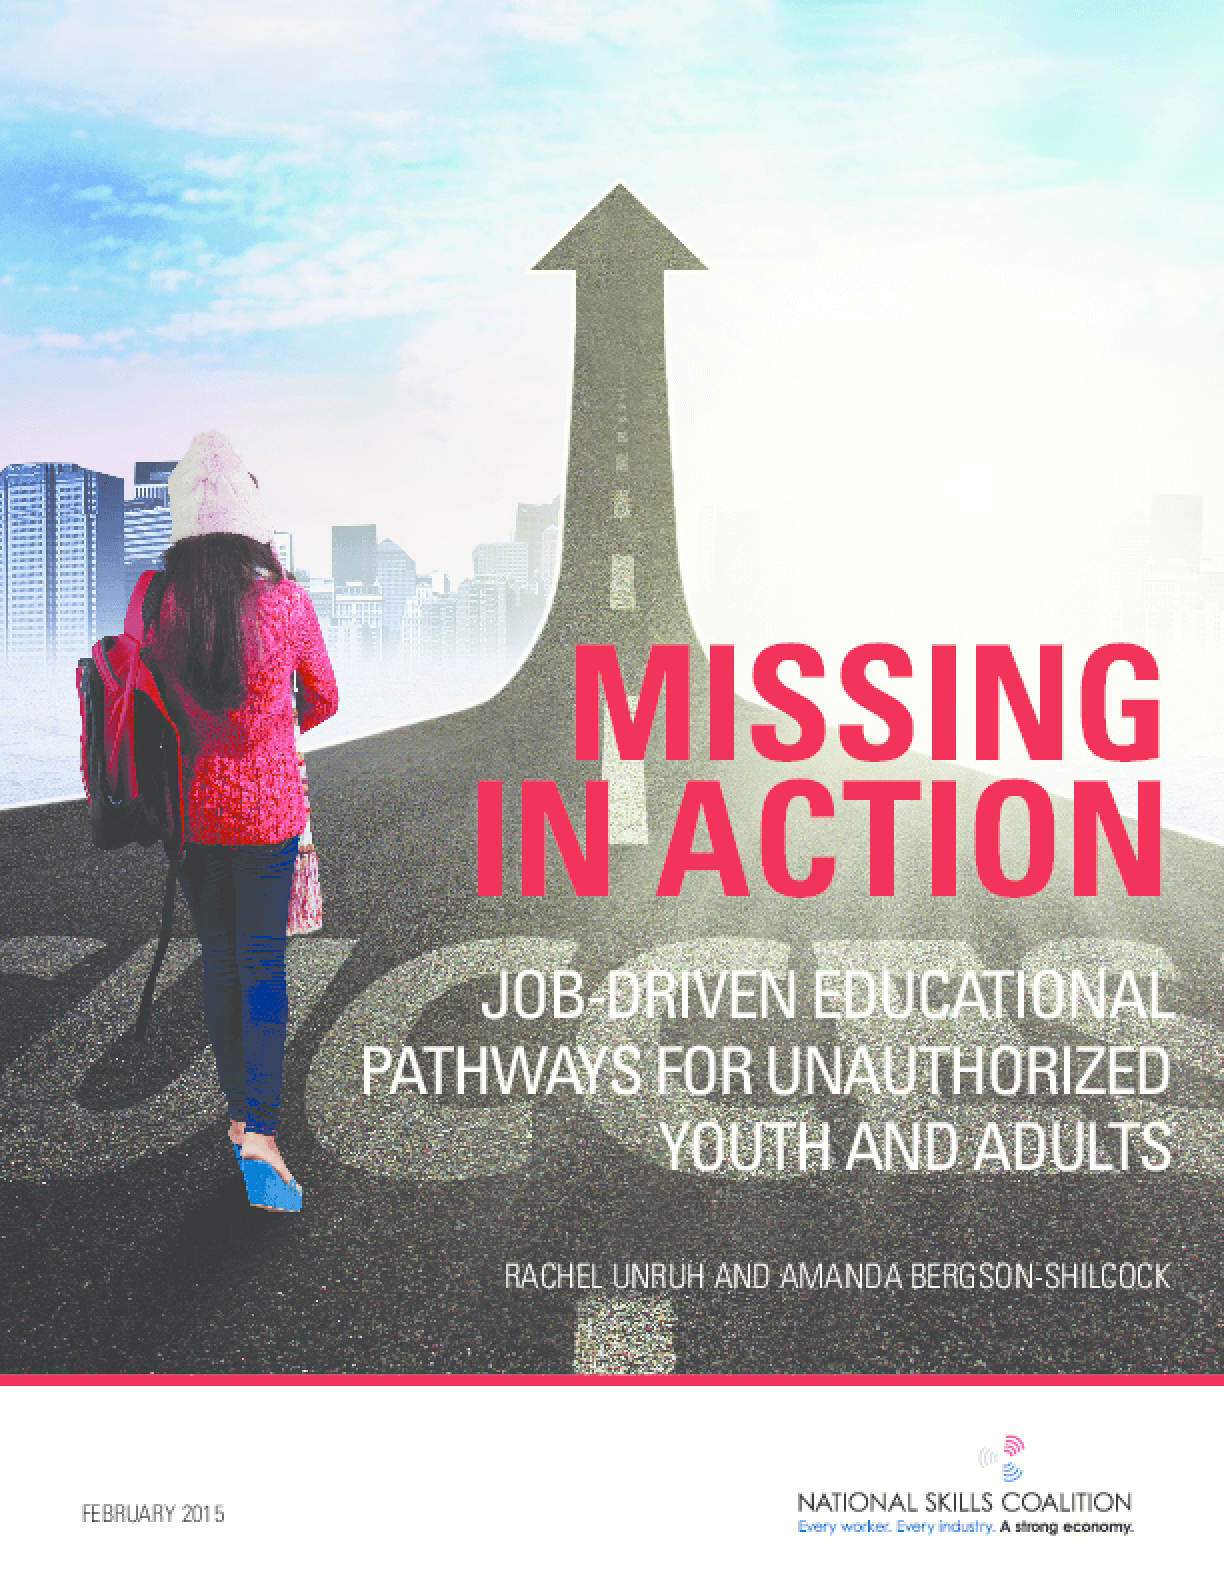 Missing in Action: Job-Driven Educational Pathways for Unauthorized Youth and Adults